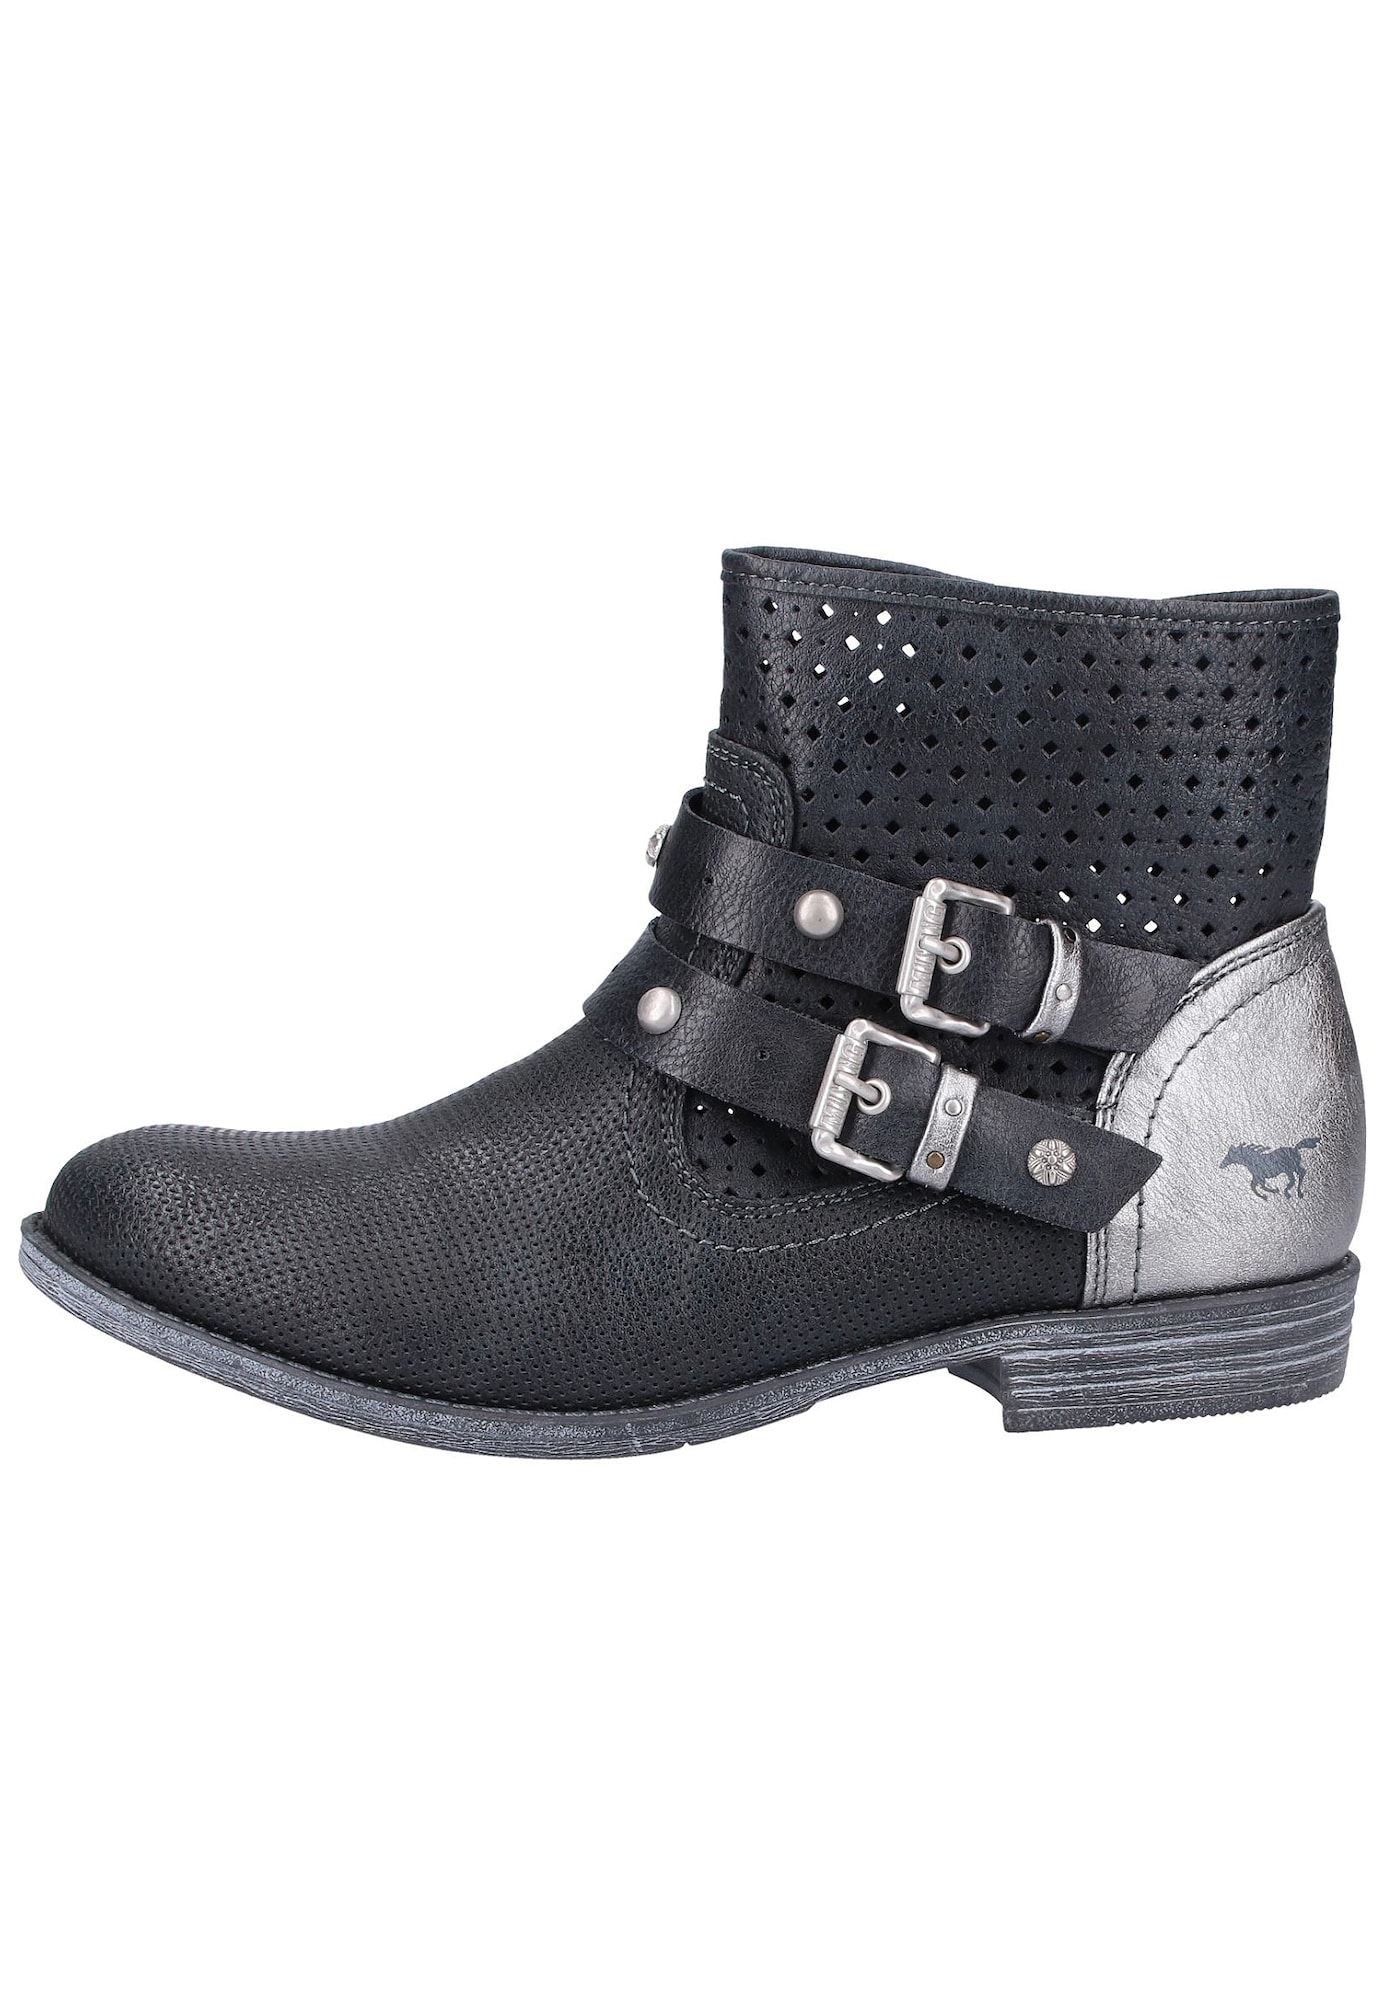 mustang - Stiefelette